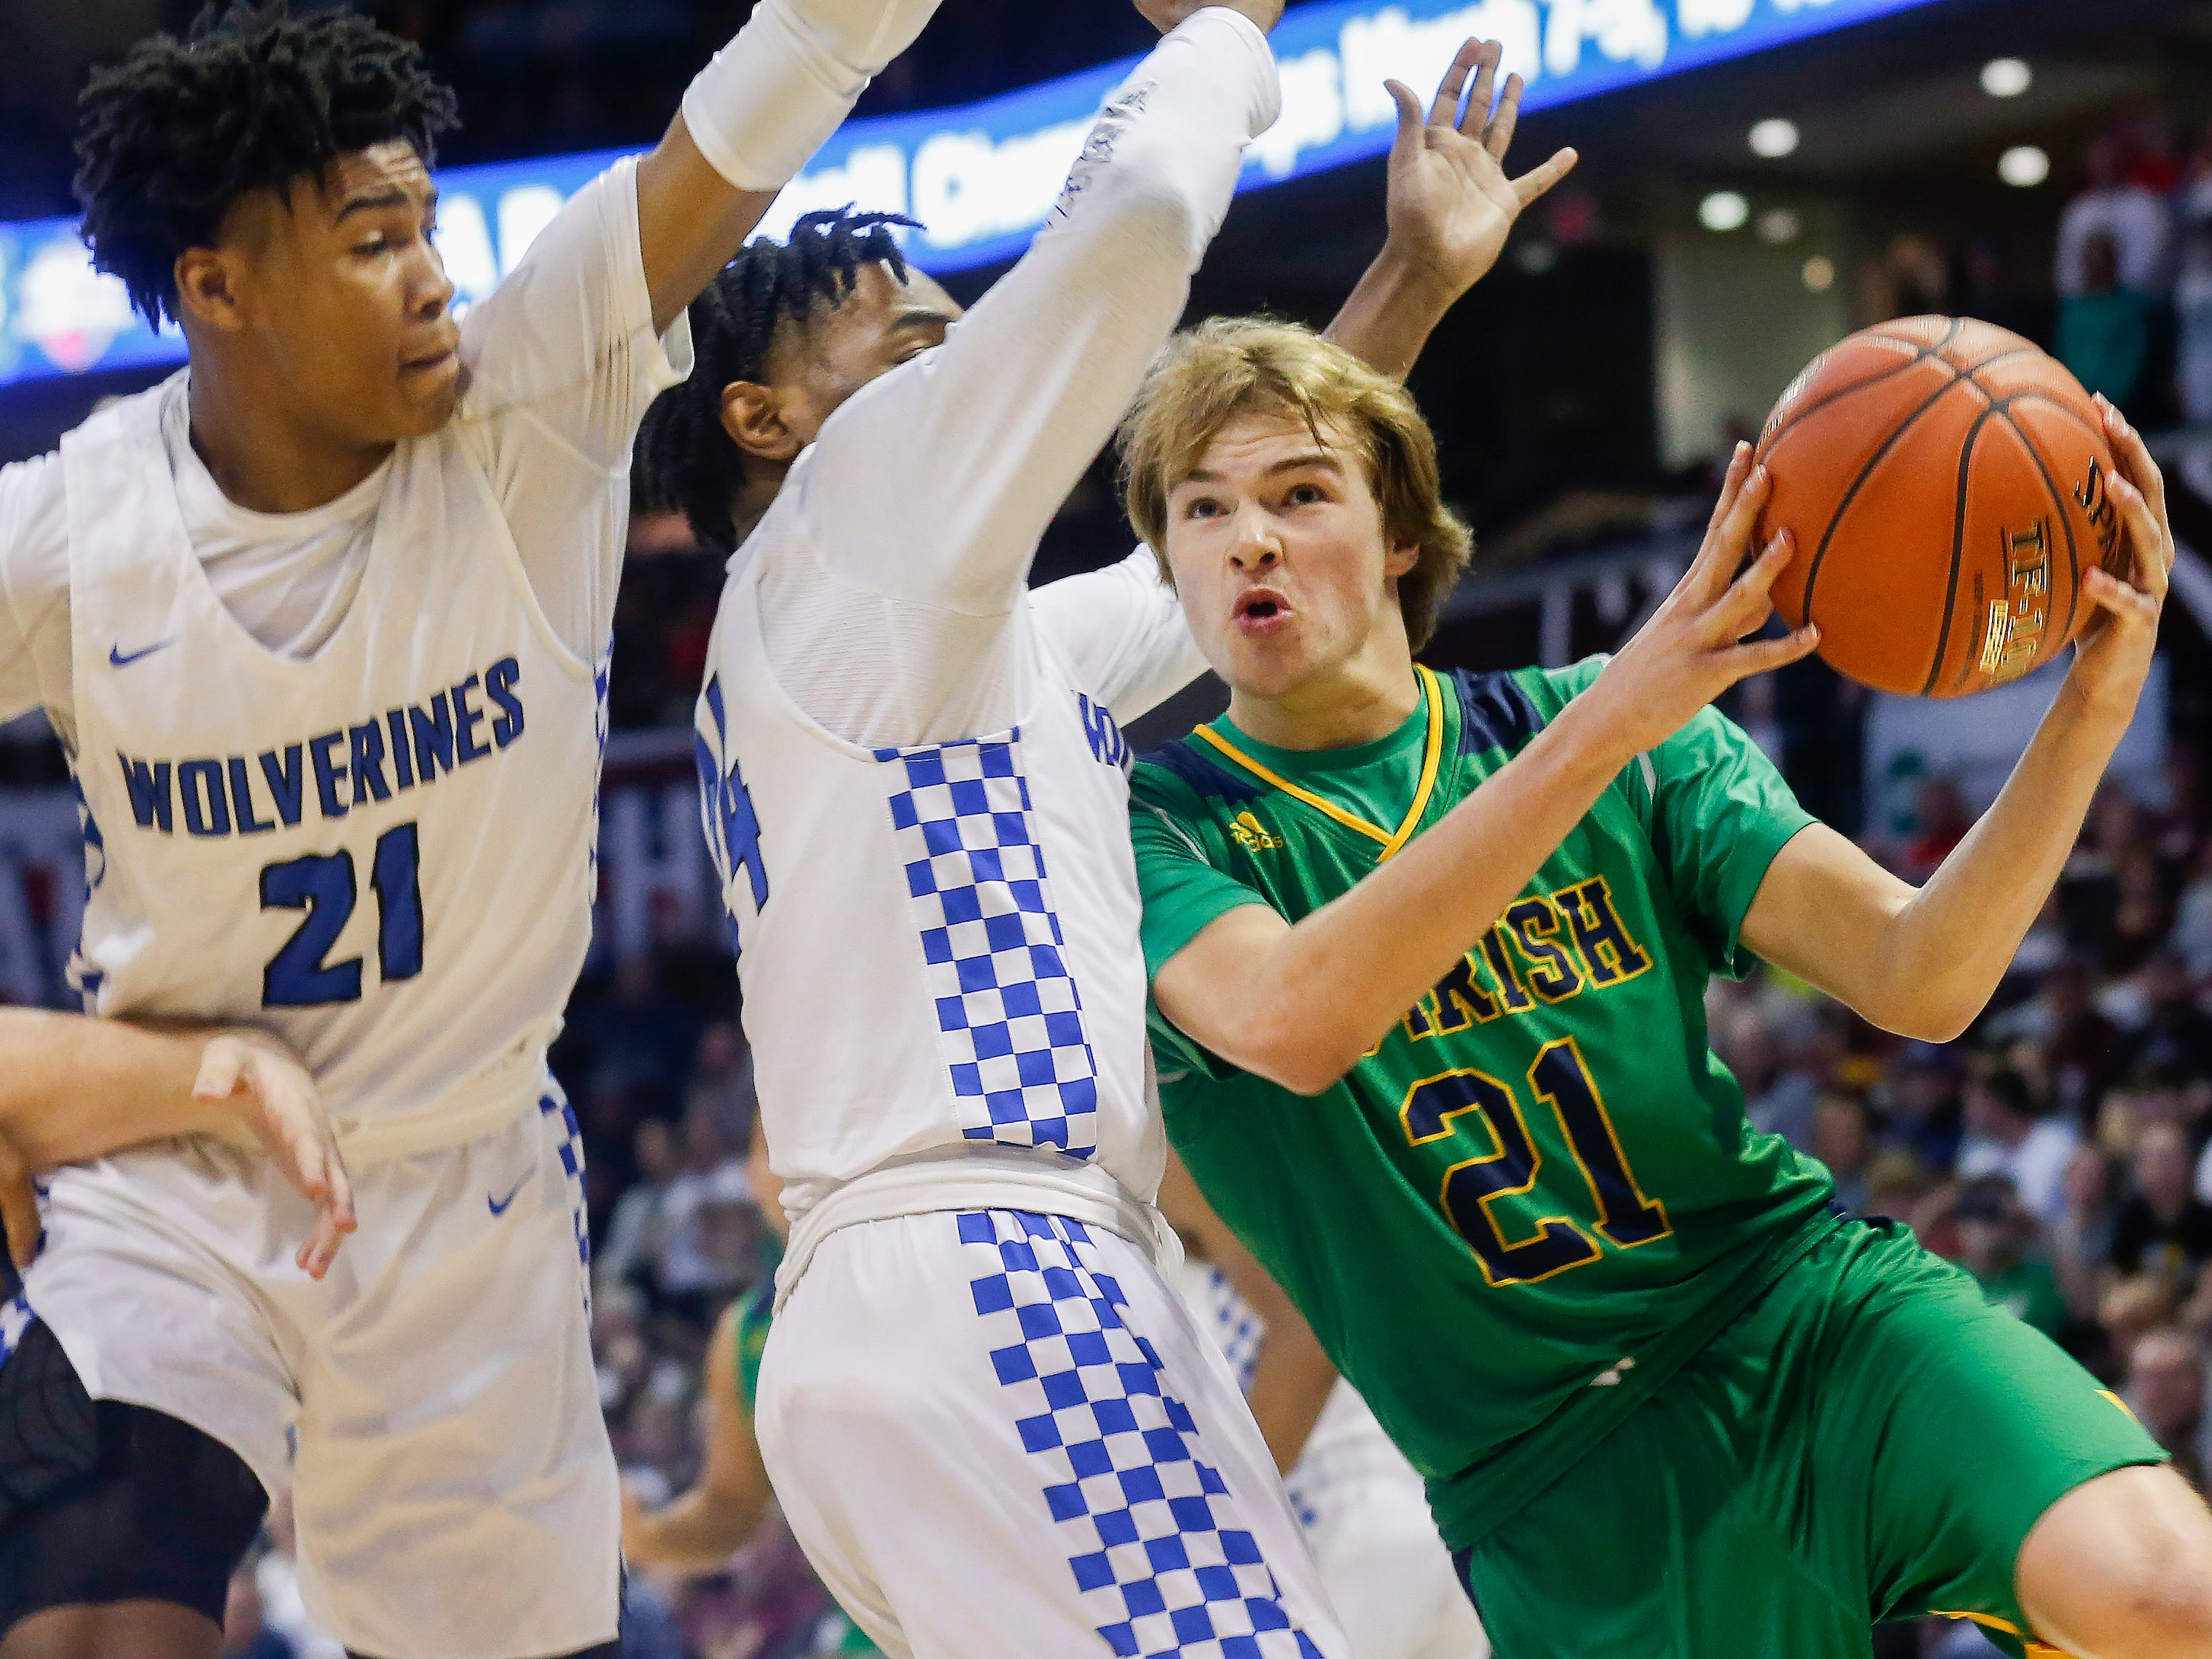 Charlie O'Reilly, of Springfield Catholic, puts up a shot during the Irish's 69-59 loss to Vashon in the Class 3 state championship game at JQH Arena on Friday, March 8, 2019.